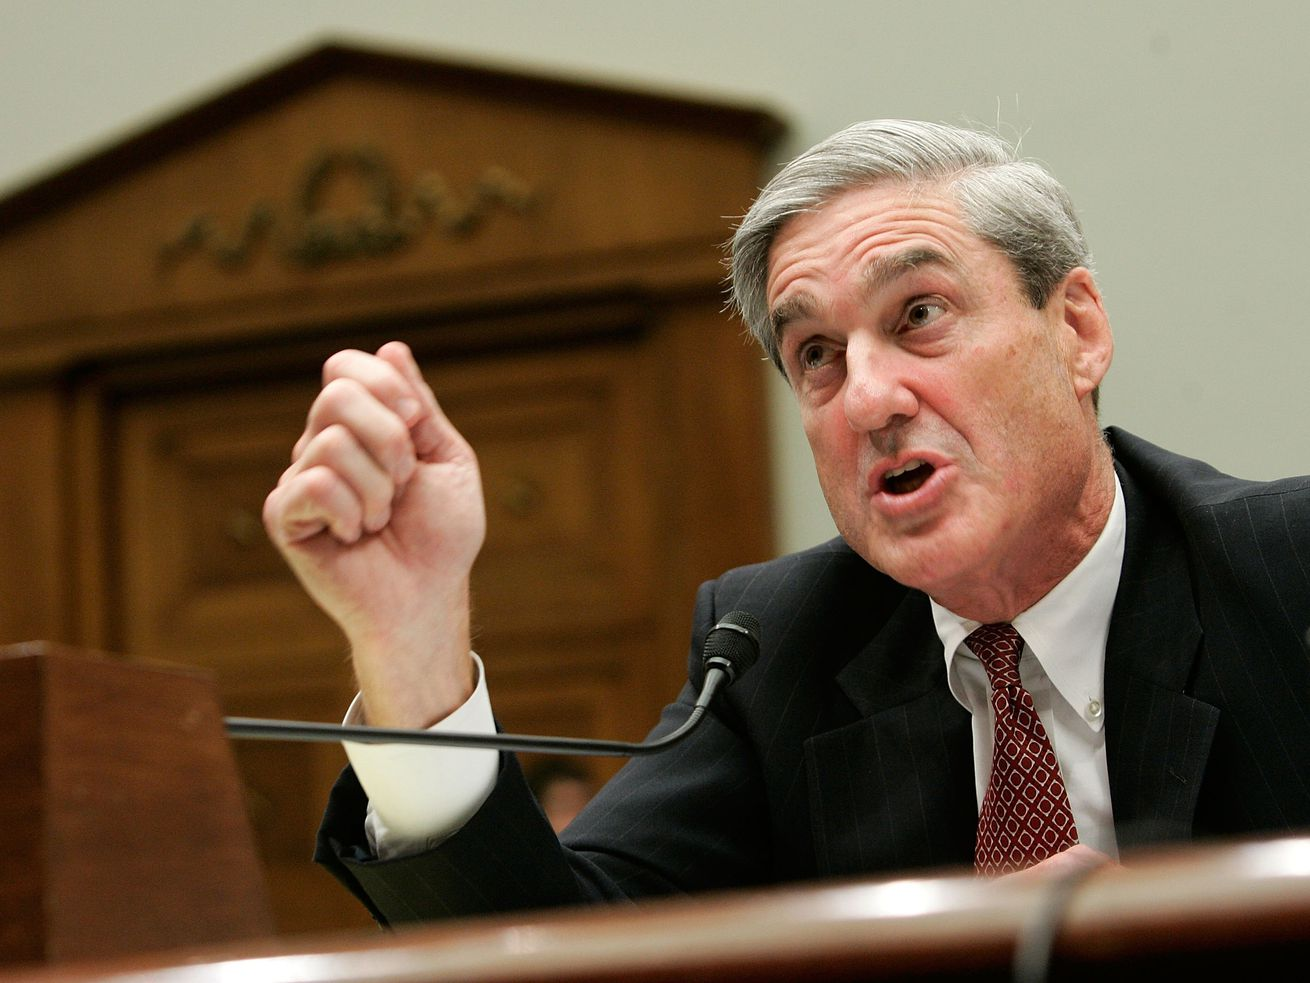 Special counsel Robert Mueller testifies during a hearing before the House Judiciary Committee July 26, 2007, when he was FBI director.